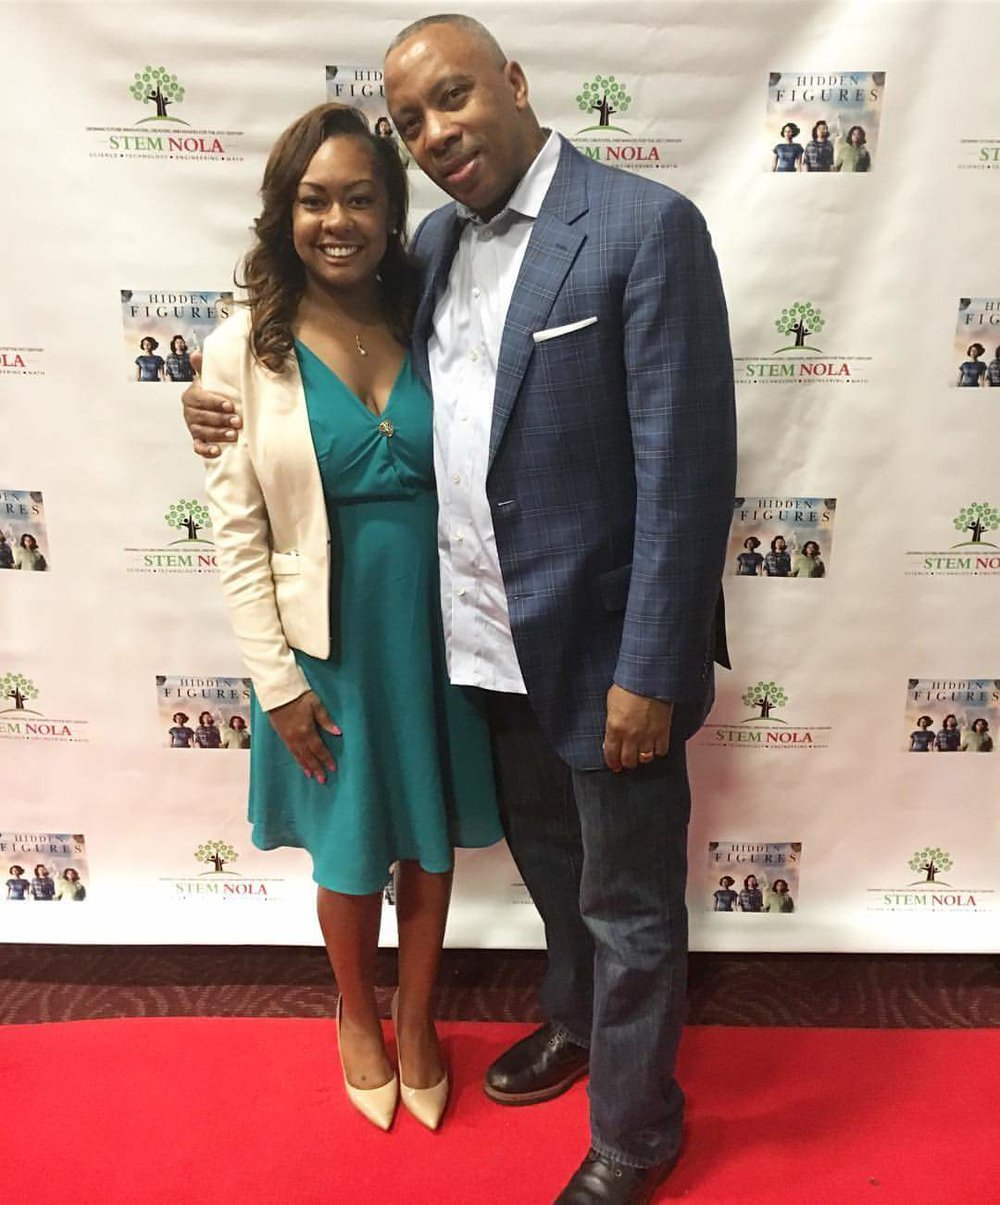 Dr. Mackie (Founder of STEM NOLA) & I at STEM NOLA's Private Screening of Hidden Figures which was planned my me